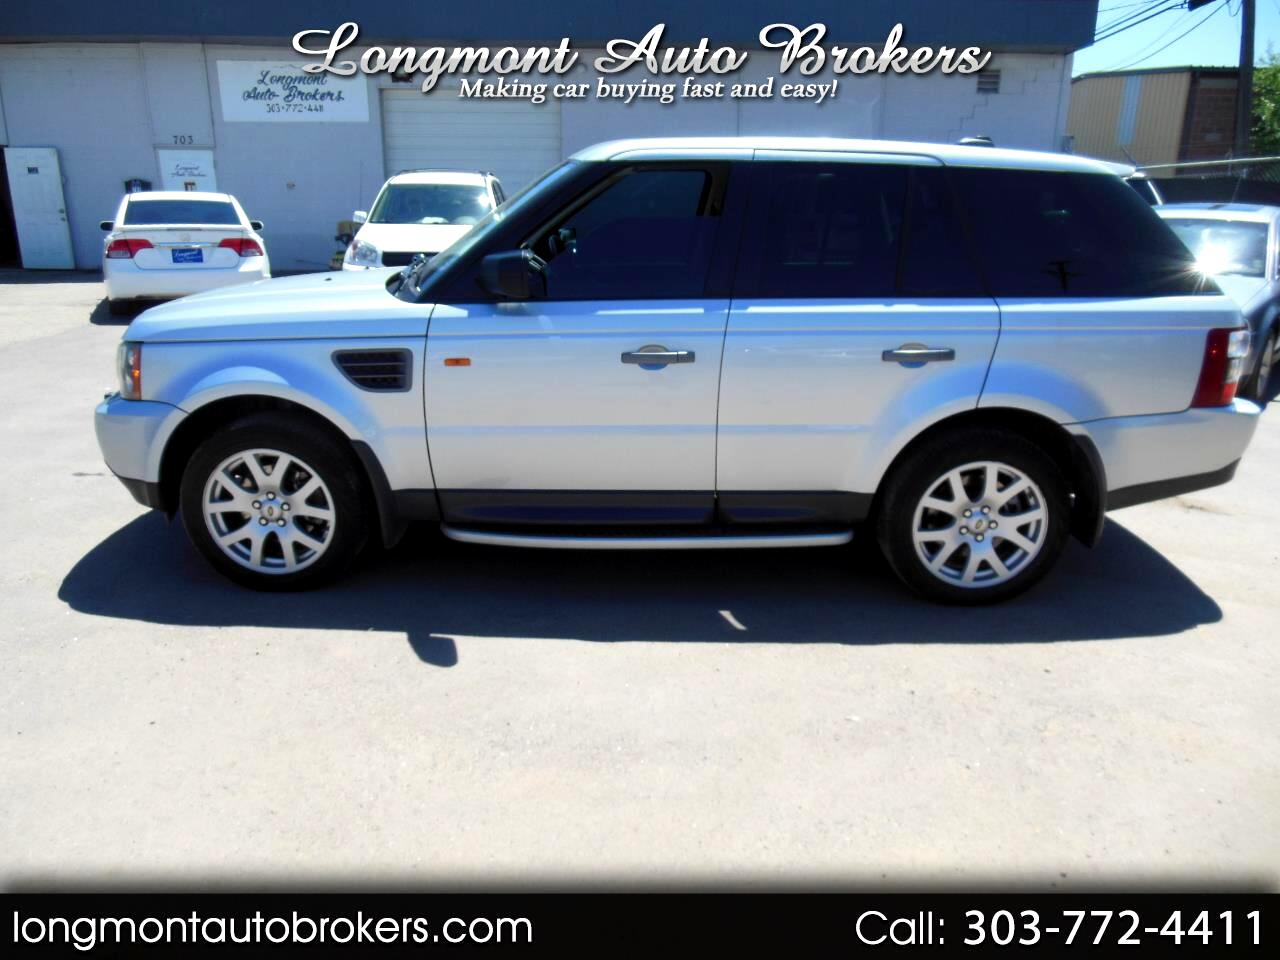 2006 Land Rover Range Rover Sport 4dr Wgn HSE